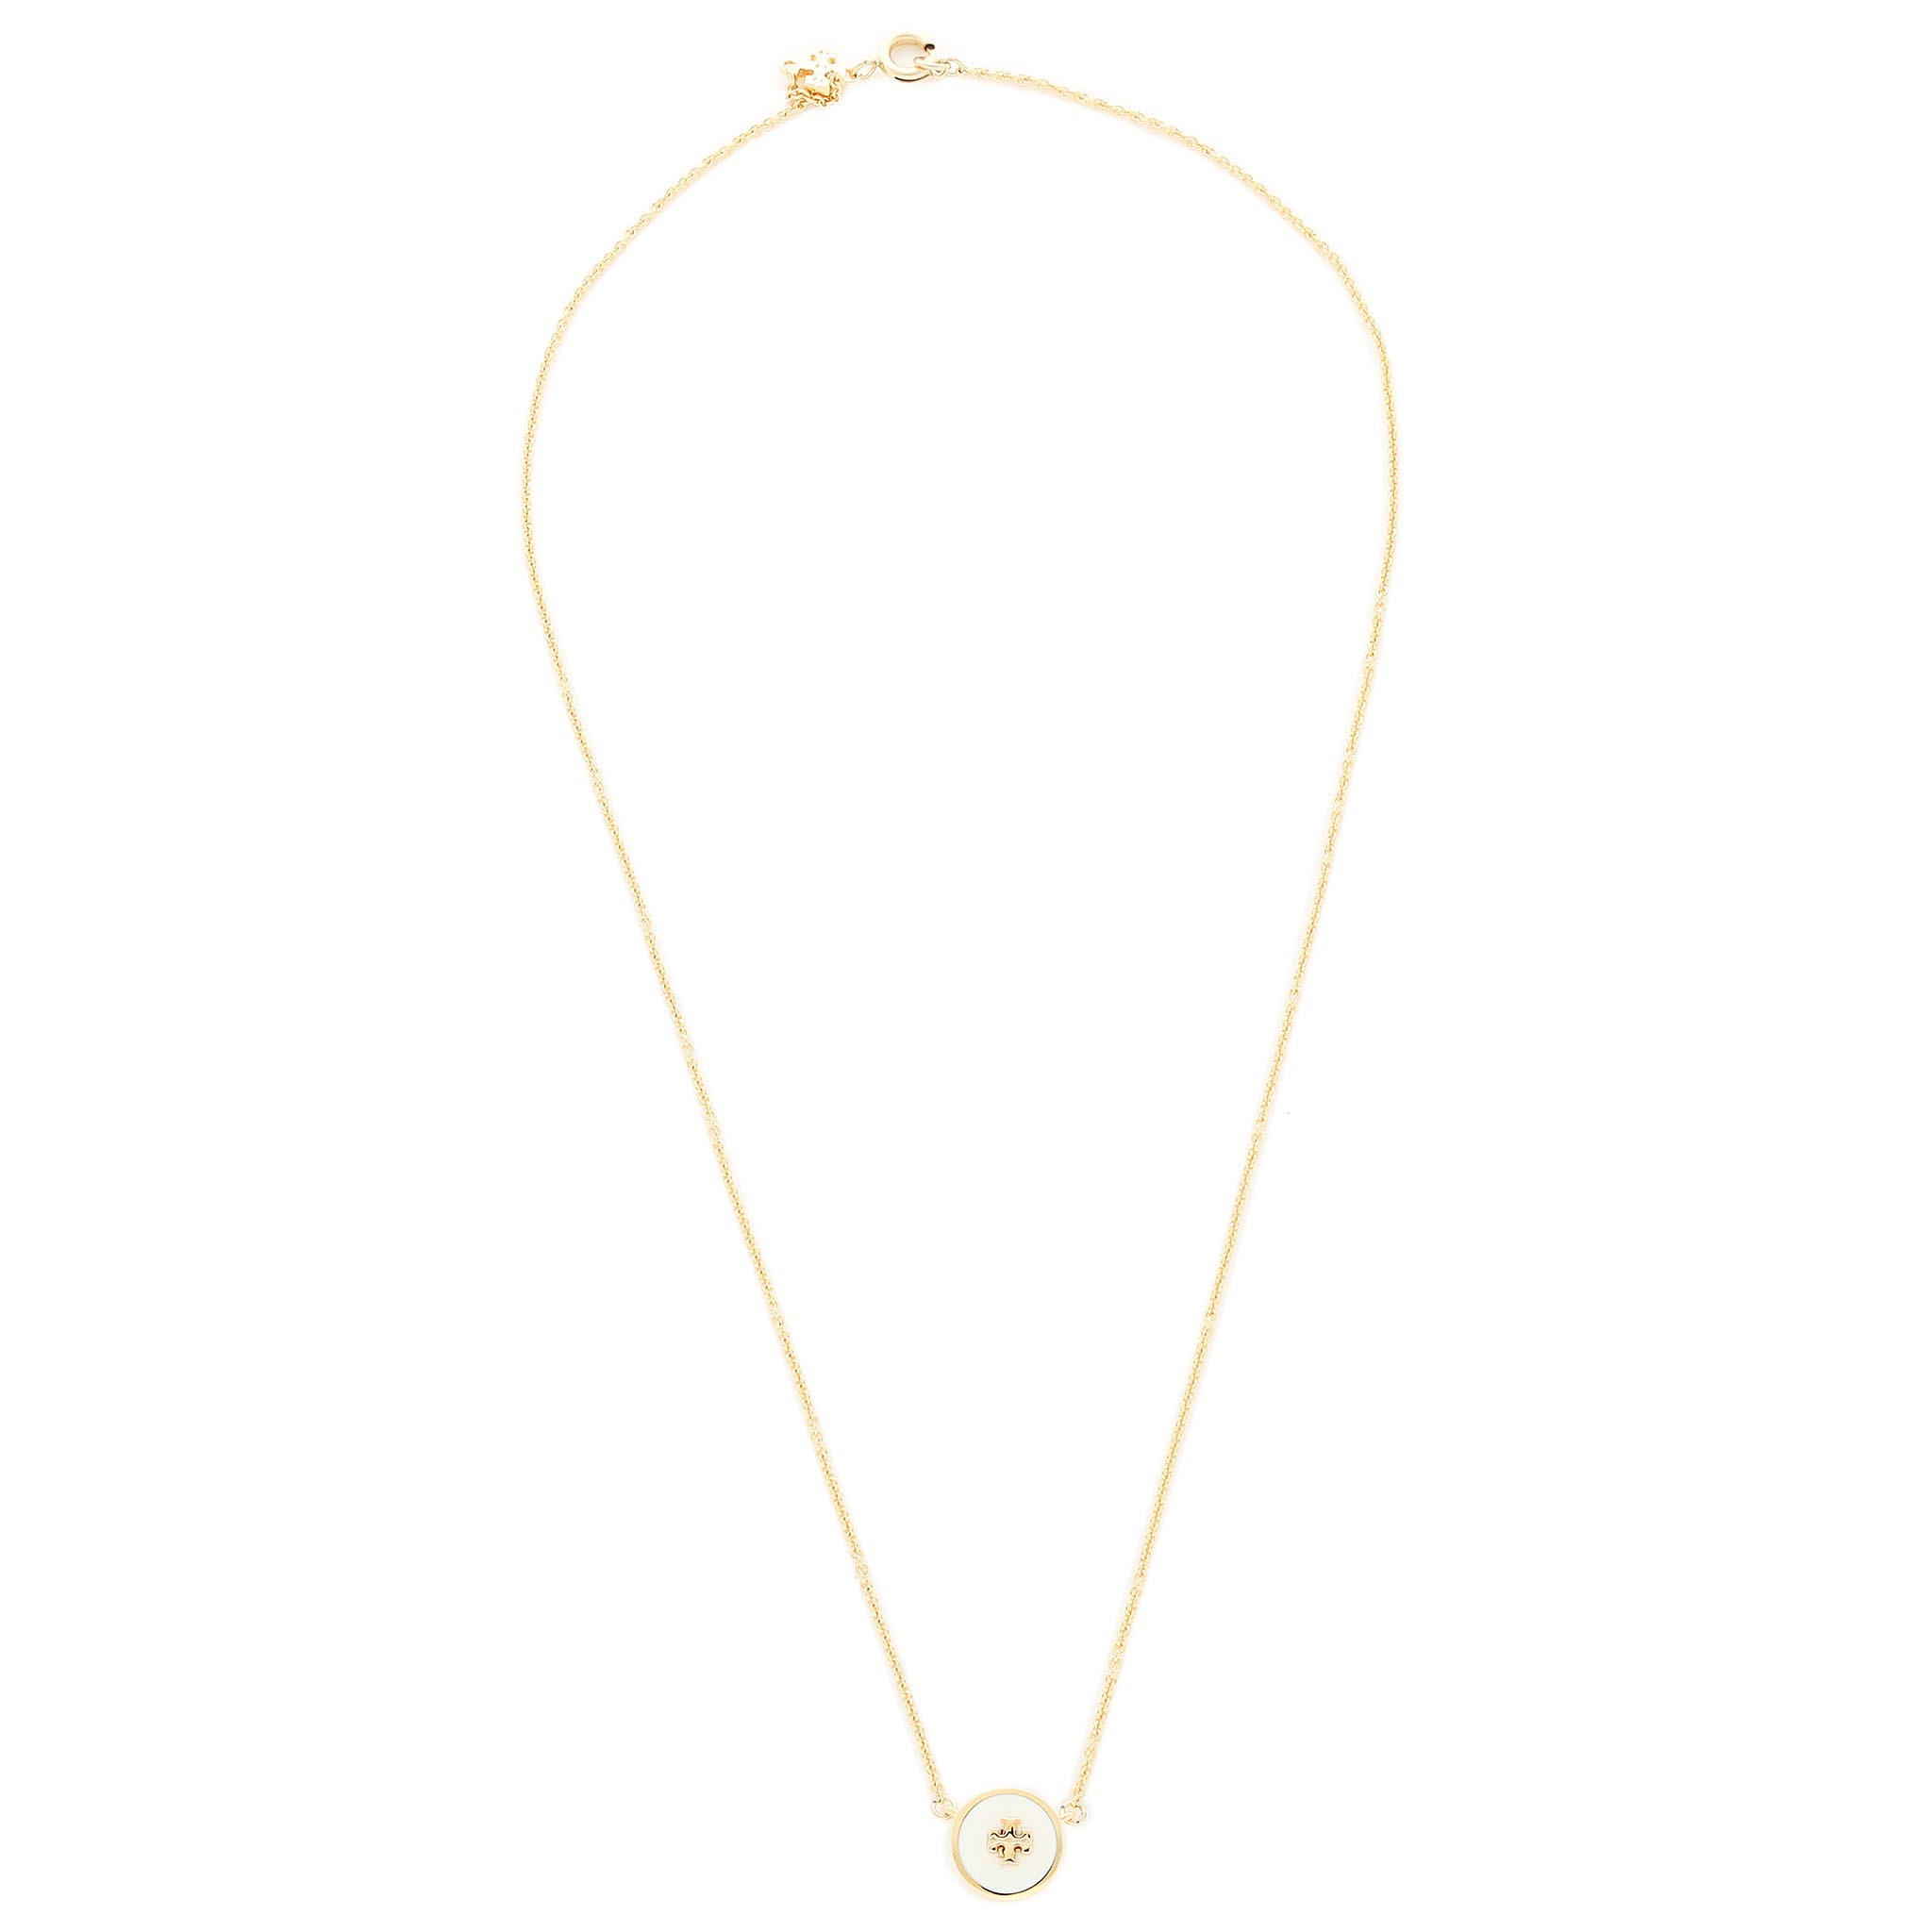 Colier TORY BURCH - Kira Enamel Pendant Necklace 64936 Tory Gold/New Ivory 110